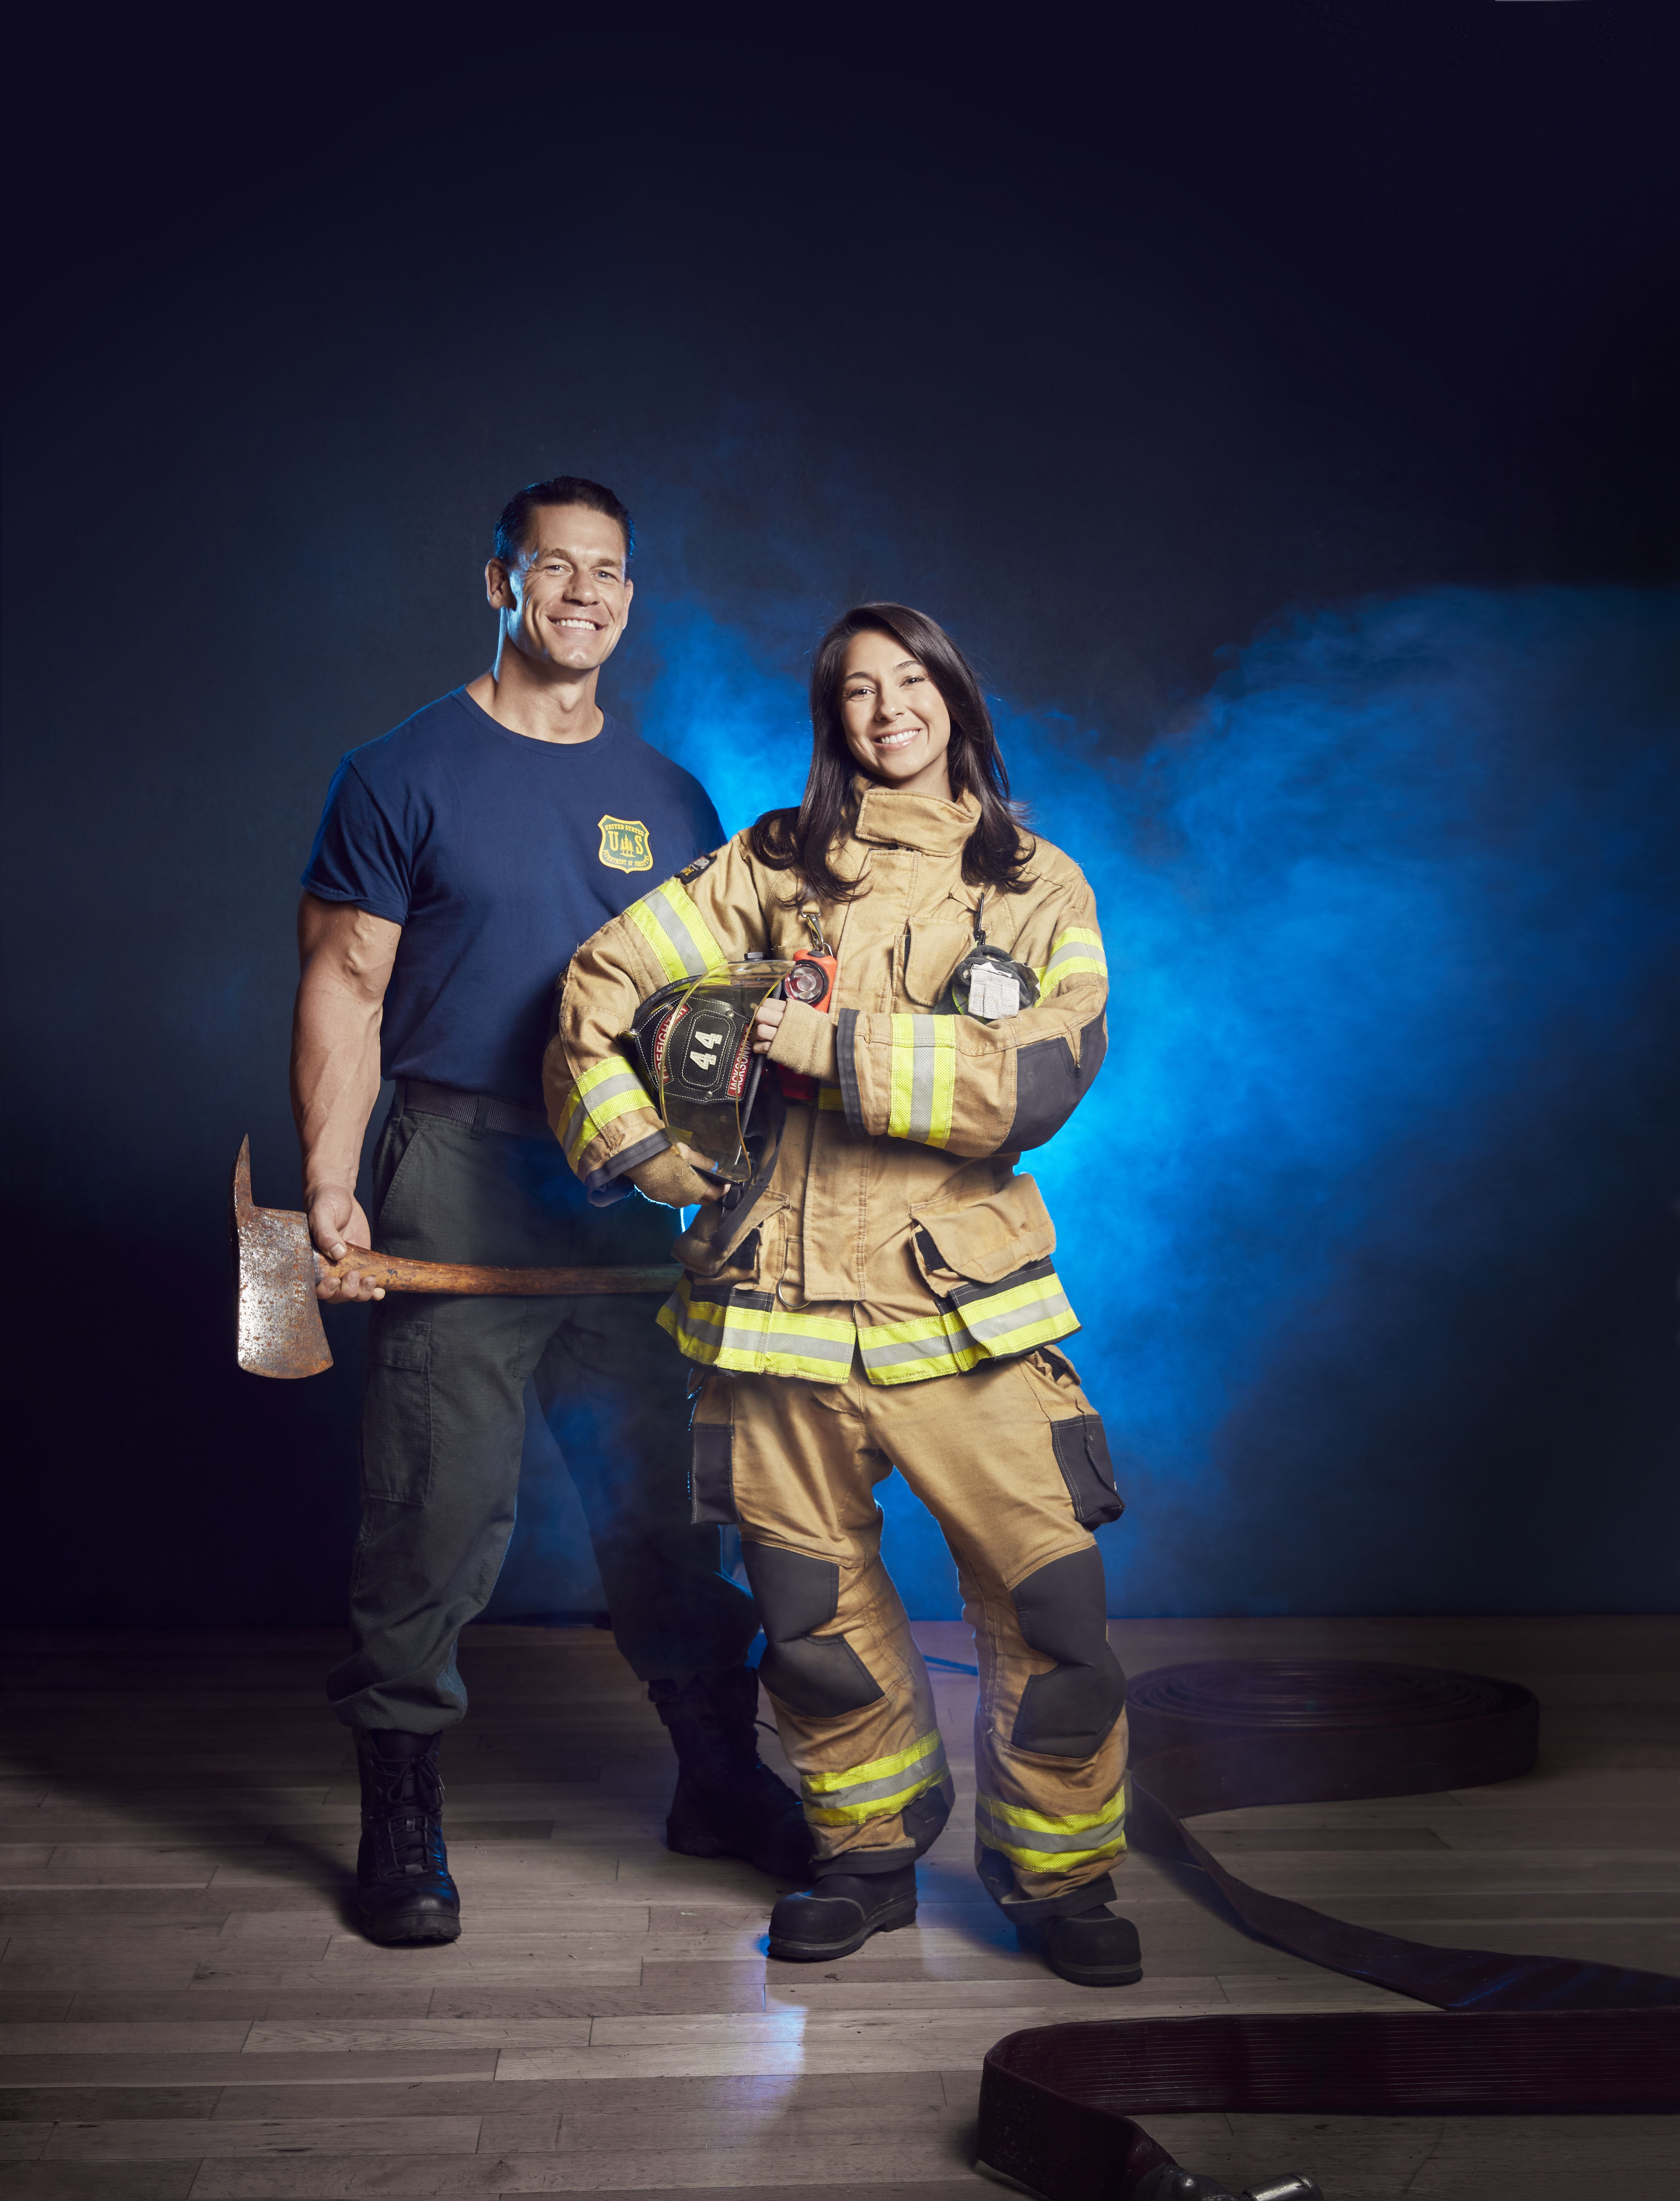 John Cena Honors First Responders for His New Movie, Playing With Fire